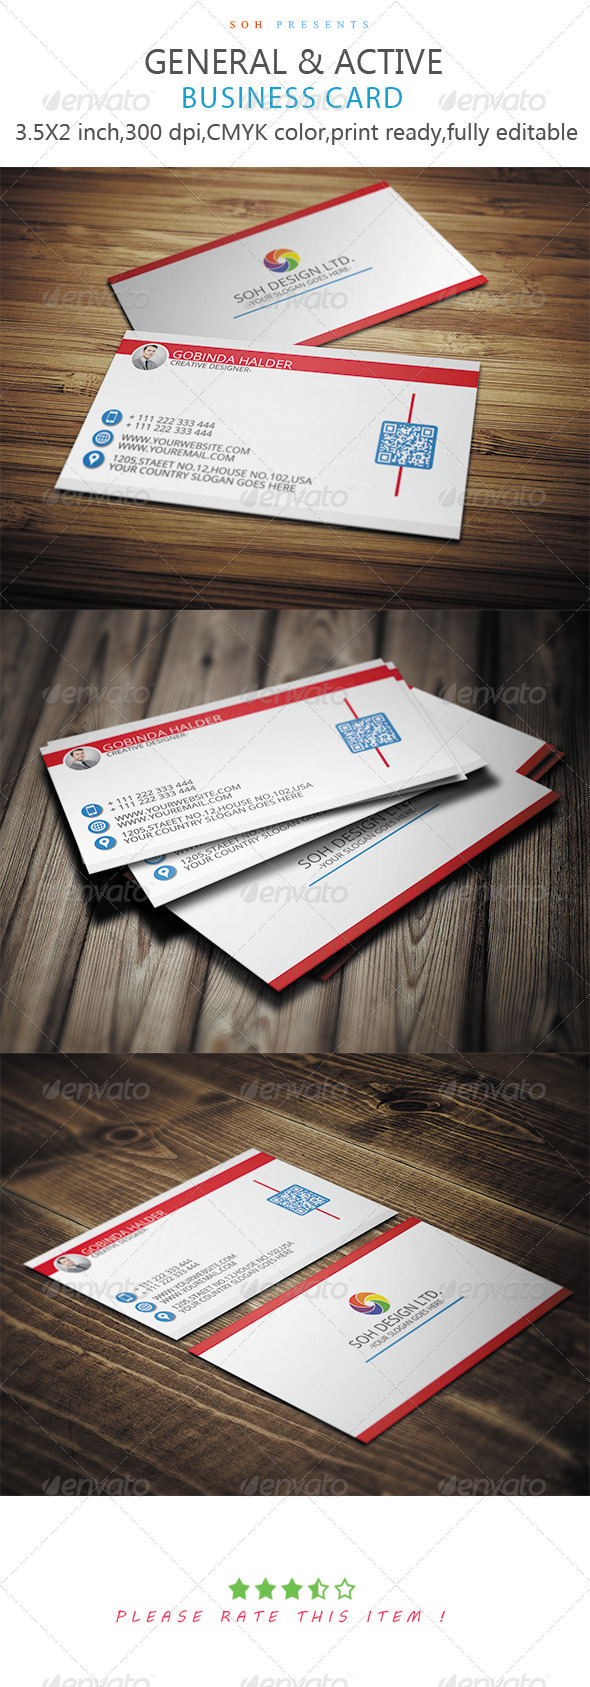 GraphicRiver General & Active Business Card Template 8746466